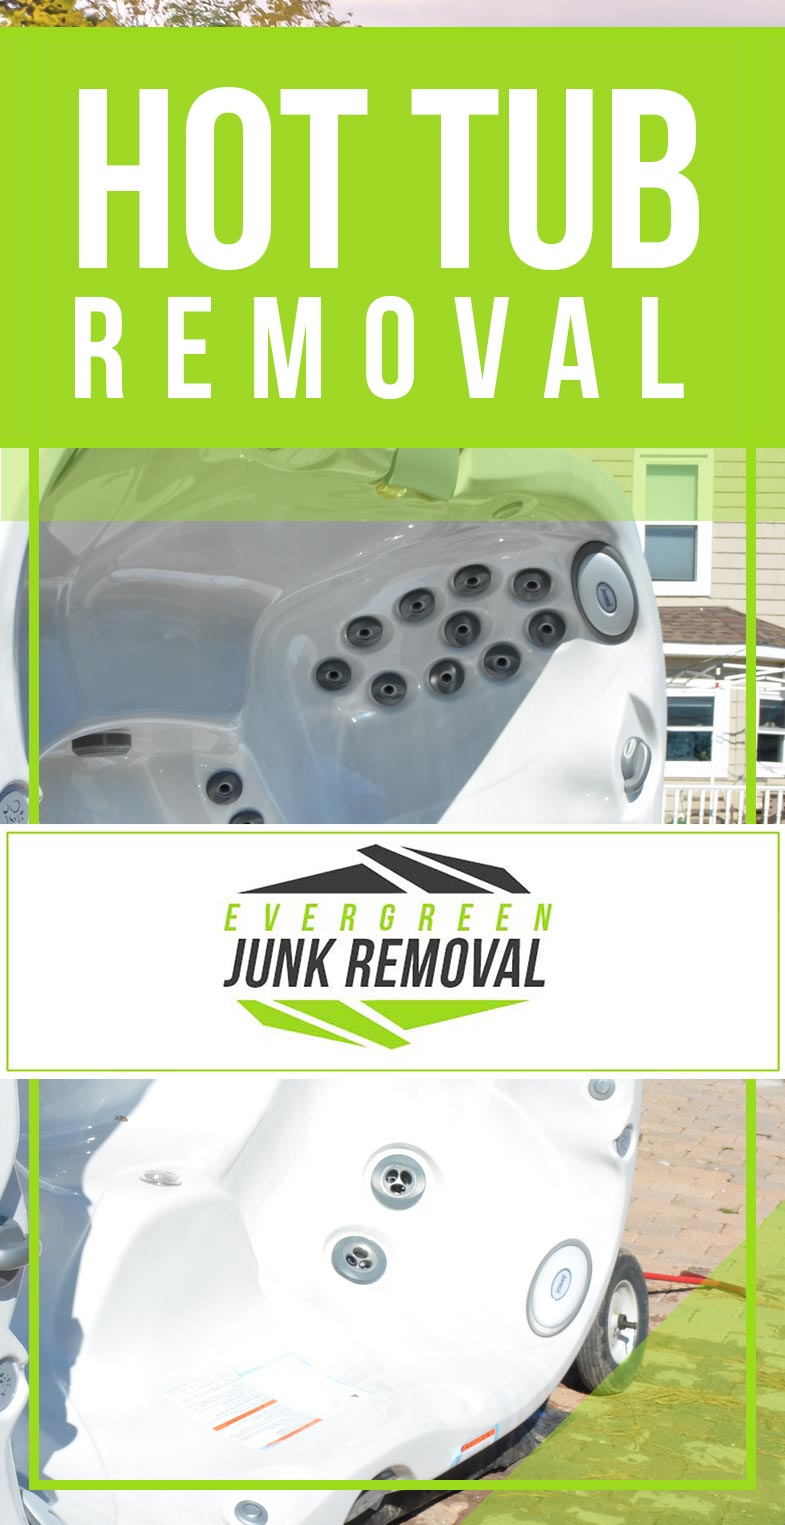 Cleburne Hot Tub Removal